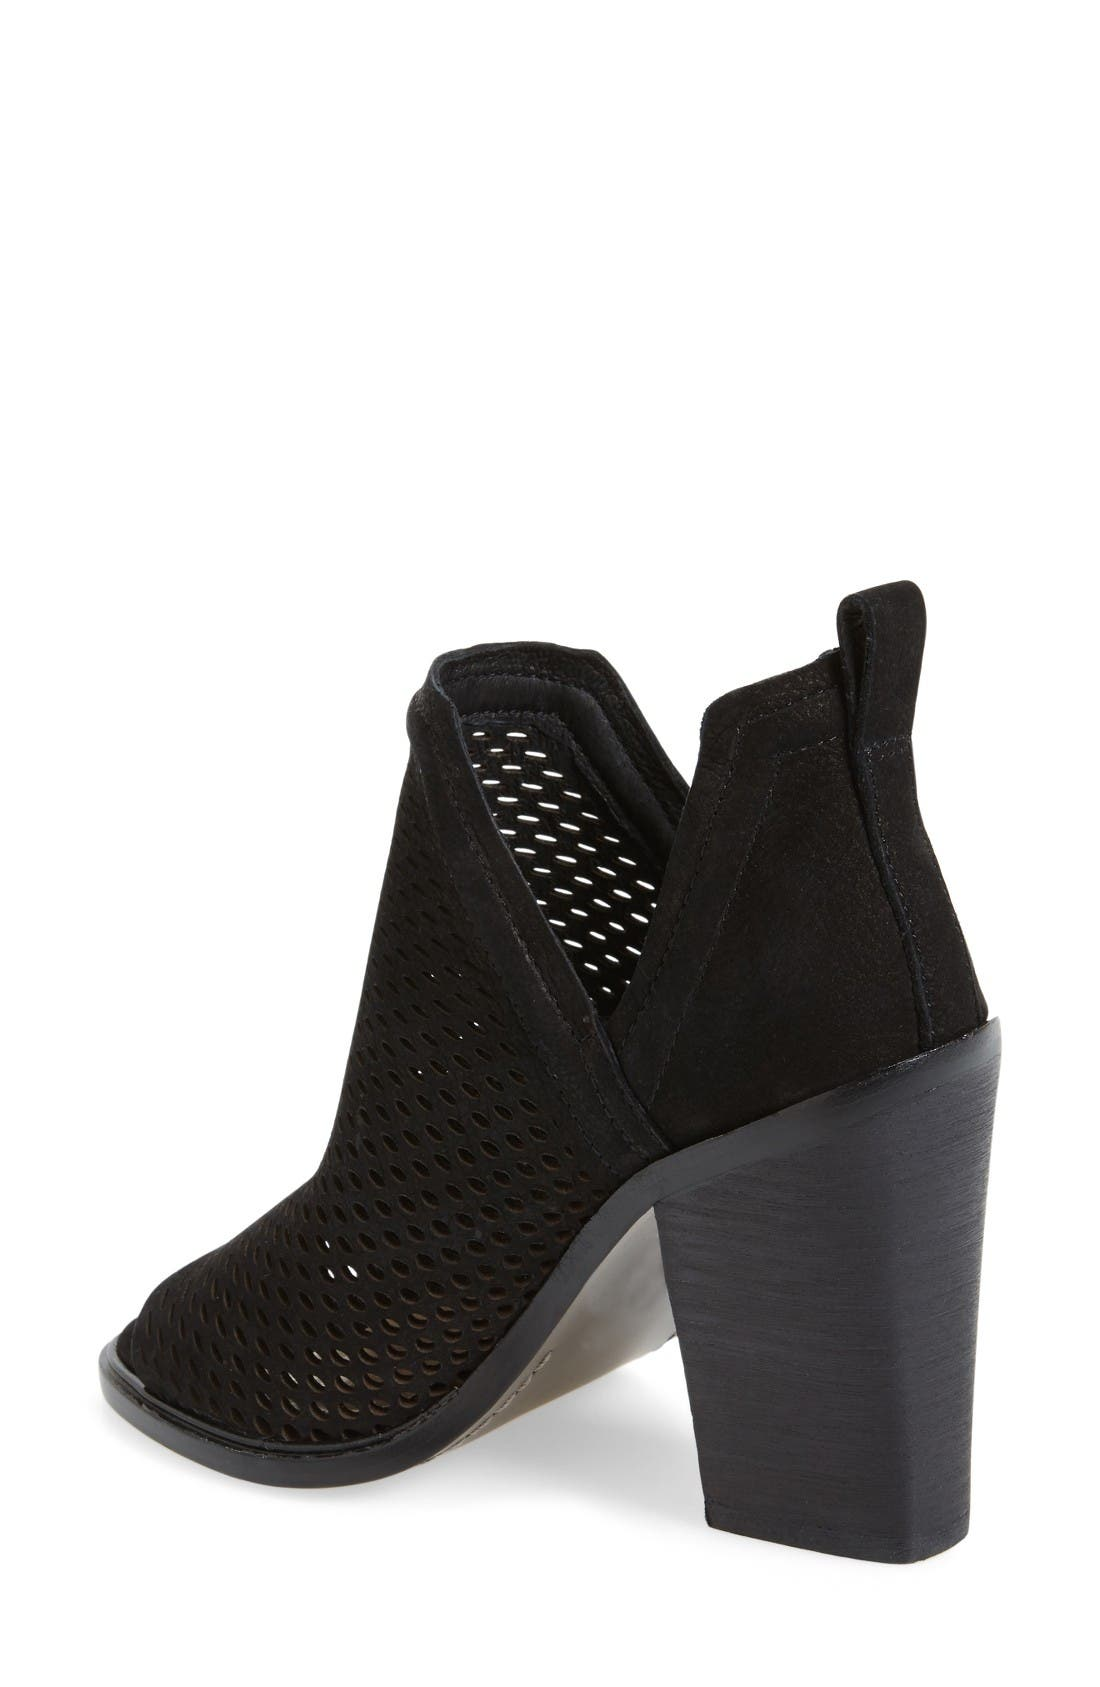 Alternate Image 2  - Vince Camuto Kensa Peep Toe Bootie (Women) (Nordstrom Exclusive)